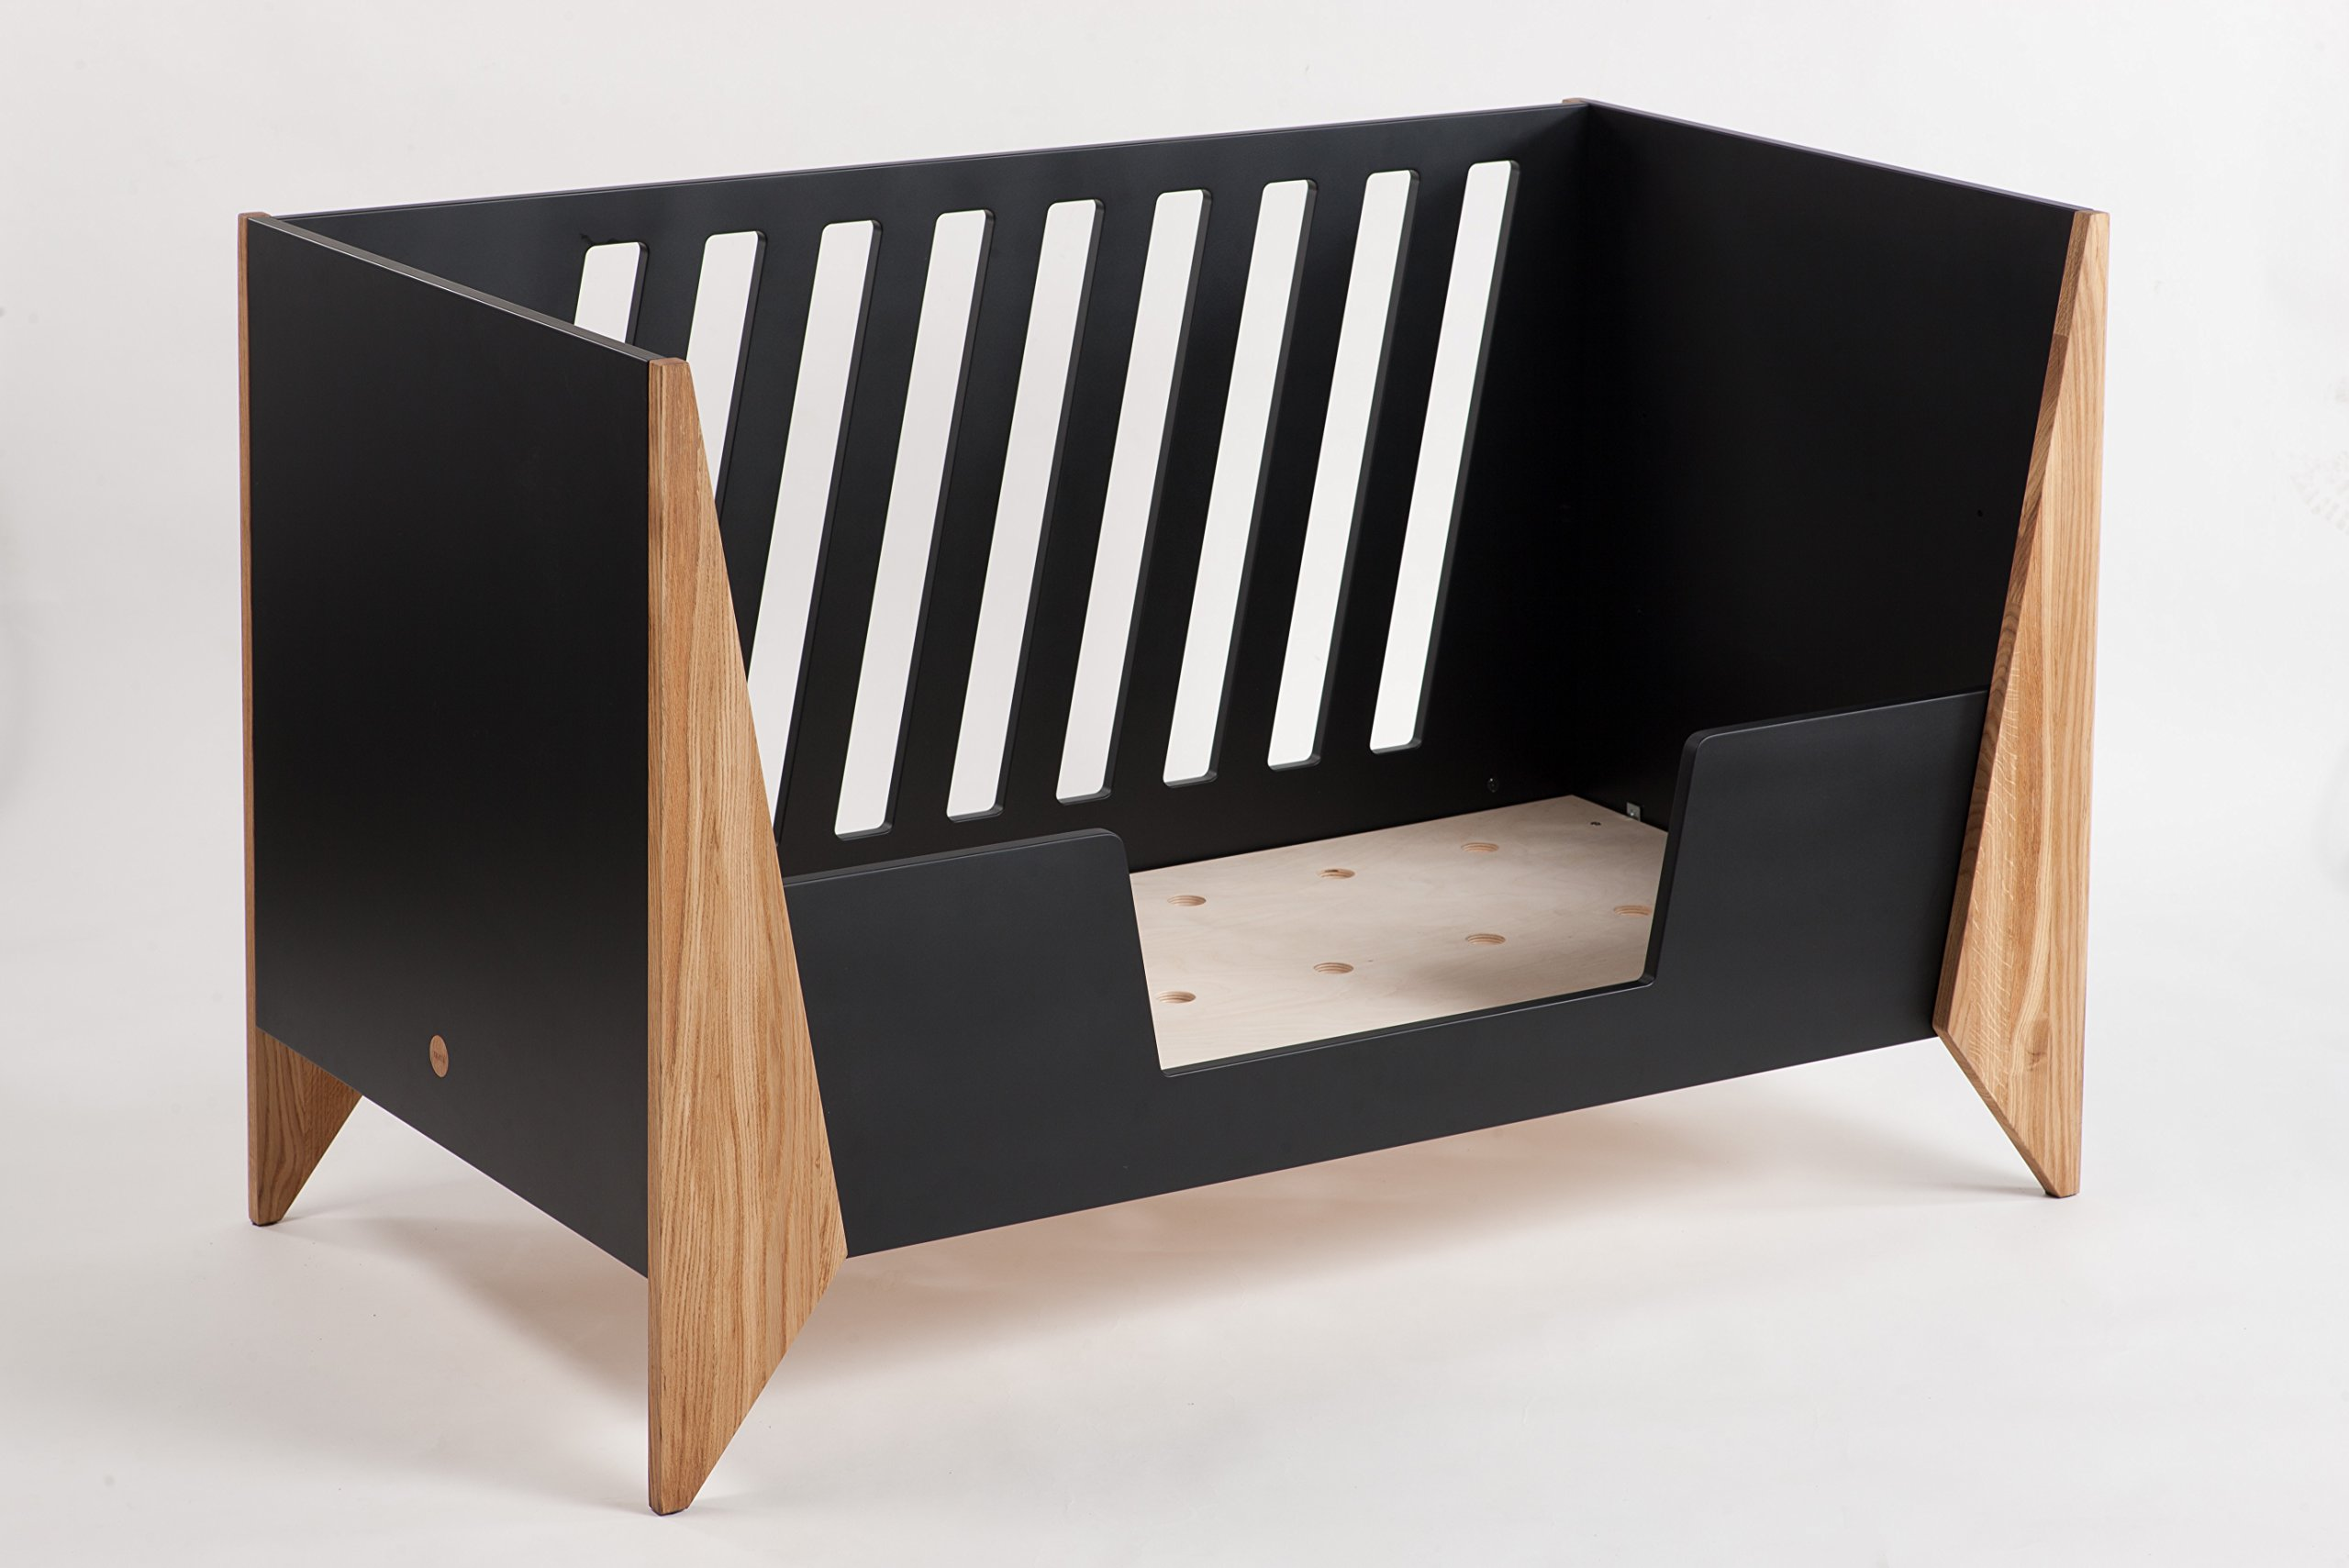 Nursery Cot (Black)  Made from high quality materials Mattress included Unique Scandinavian design 8